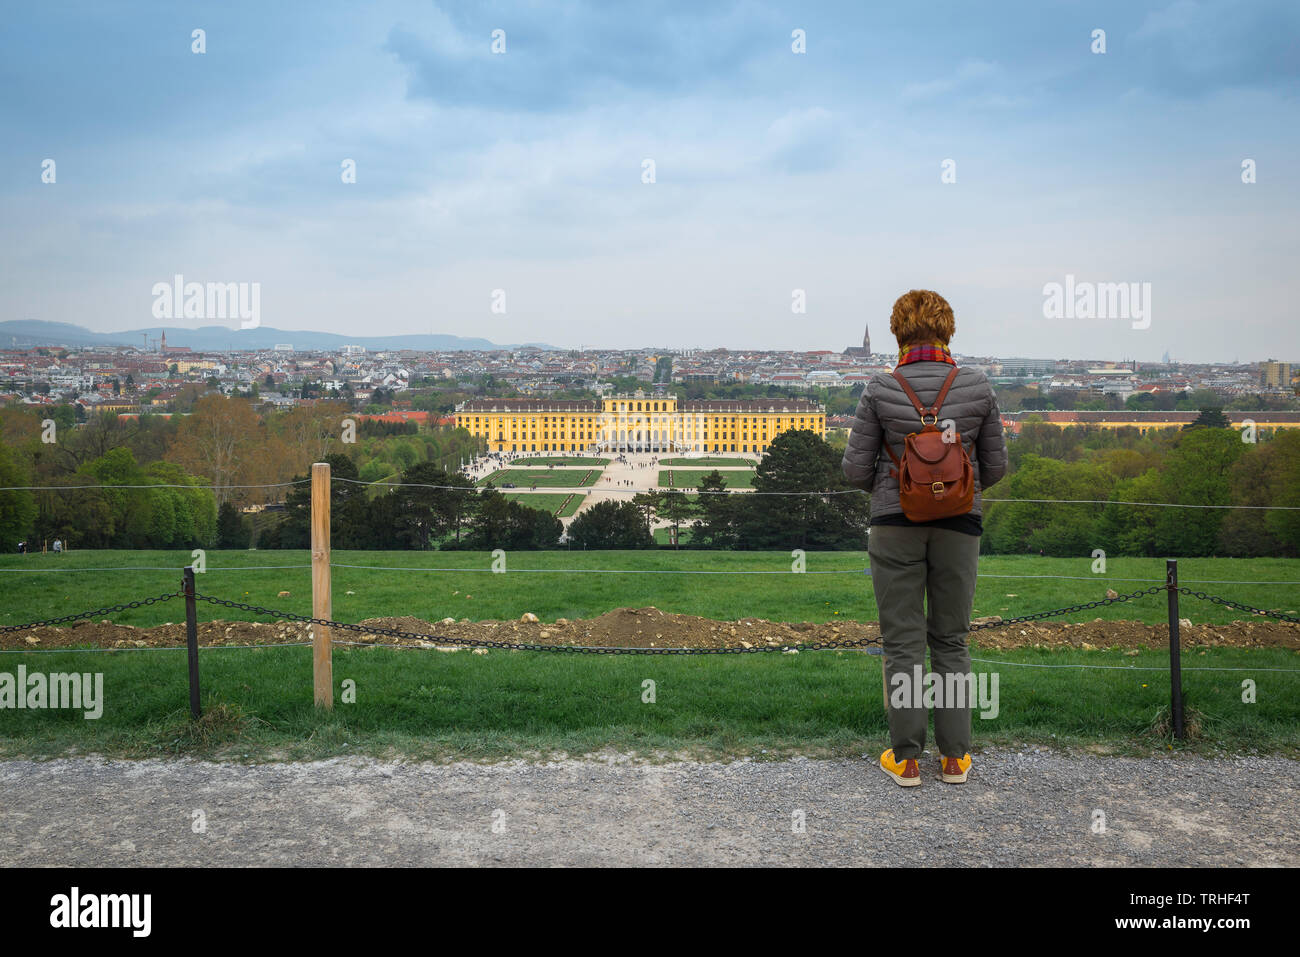 Rear view of a woman wearing a backpack looking at Schloss Schönbrunn Palace and the distant Vienna skyline, Wien, Austria. Stock Photo